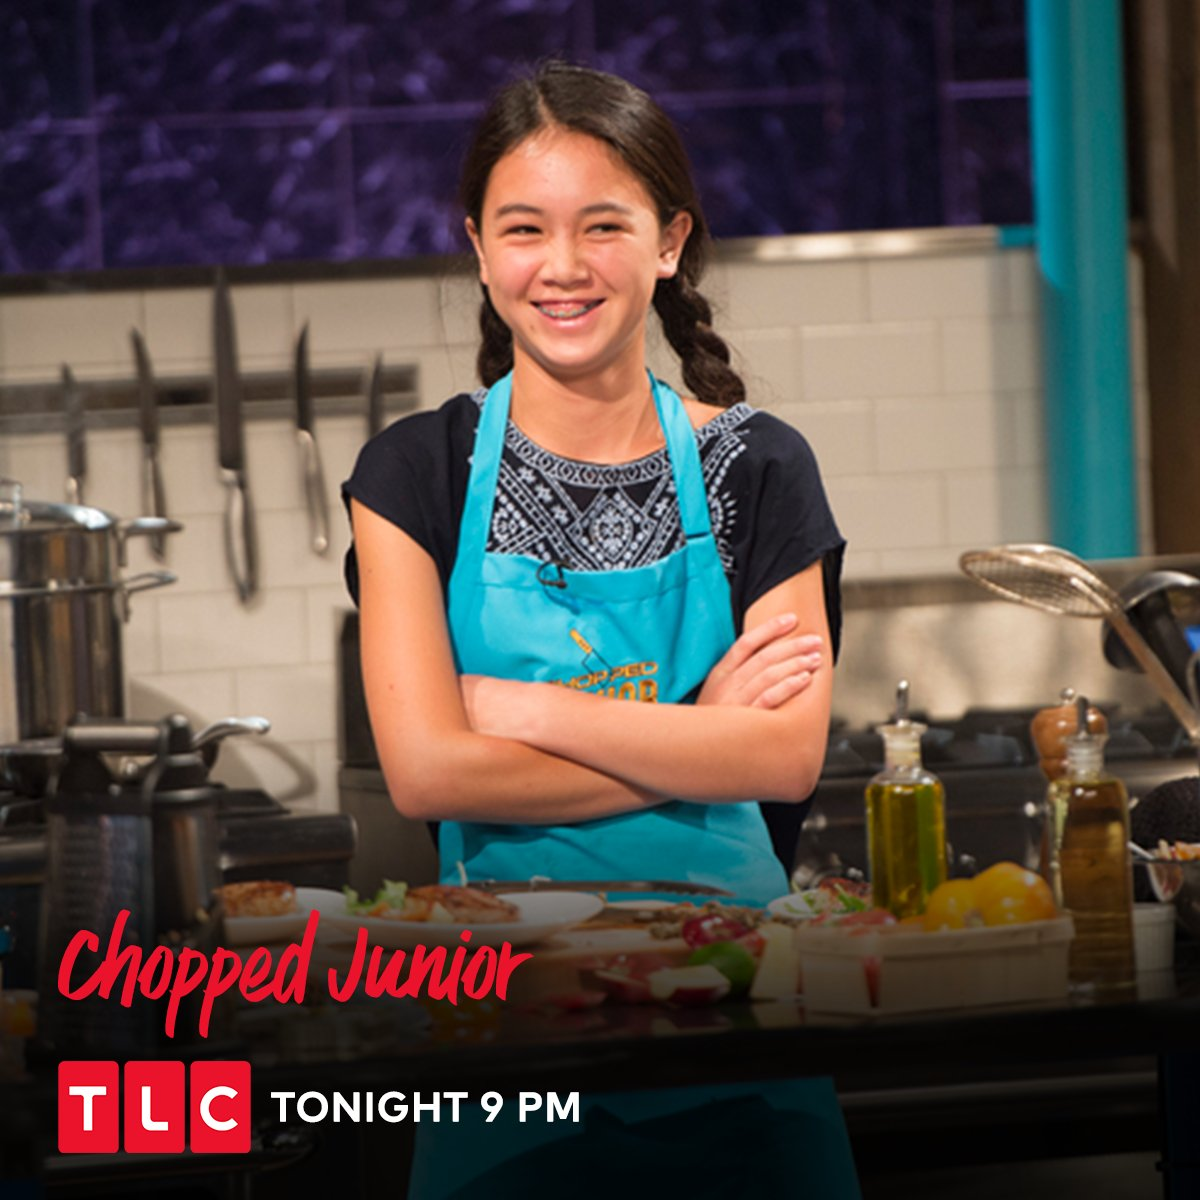 An assorted mix of ingredients await the junior chefs, find out how they mix and match them to their advantage on #ChoppedJunior, tonight at 9 PM, only on TLC.   #TLC #TLCIndia #food #foodlove #chefs #kids #kidchefs #foodies<br>http://pic.twitter.com/1Gh9lQJdFo